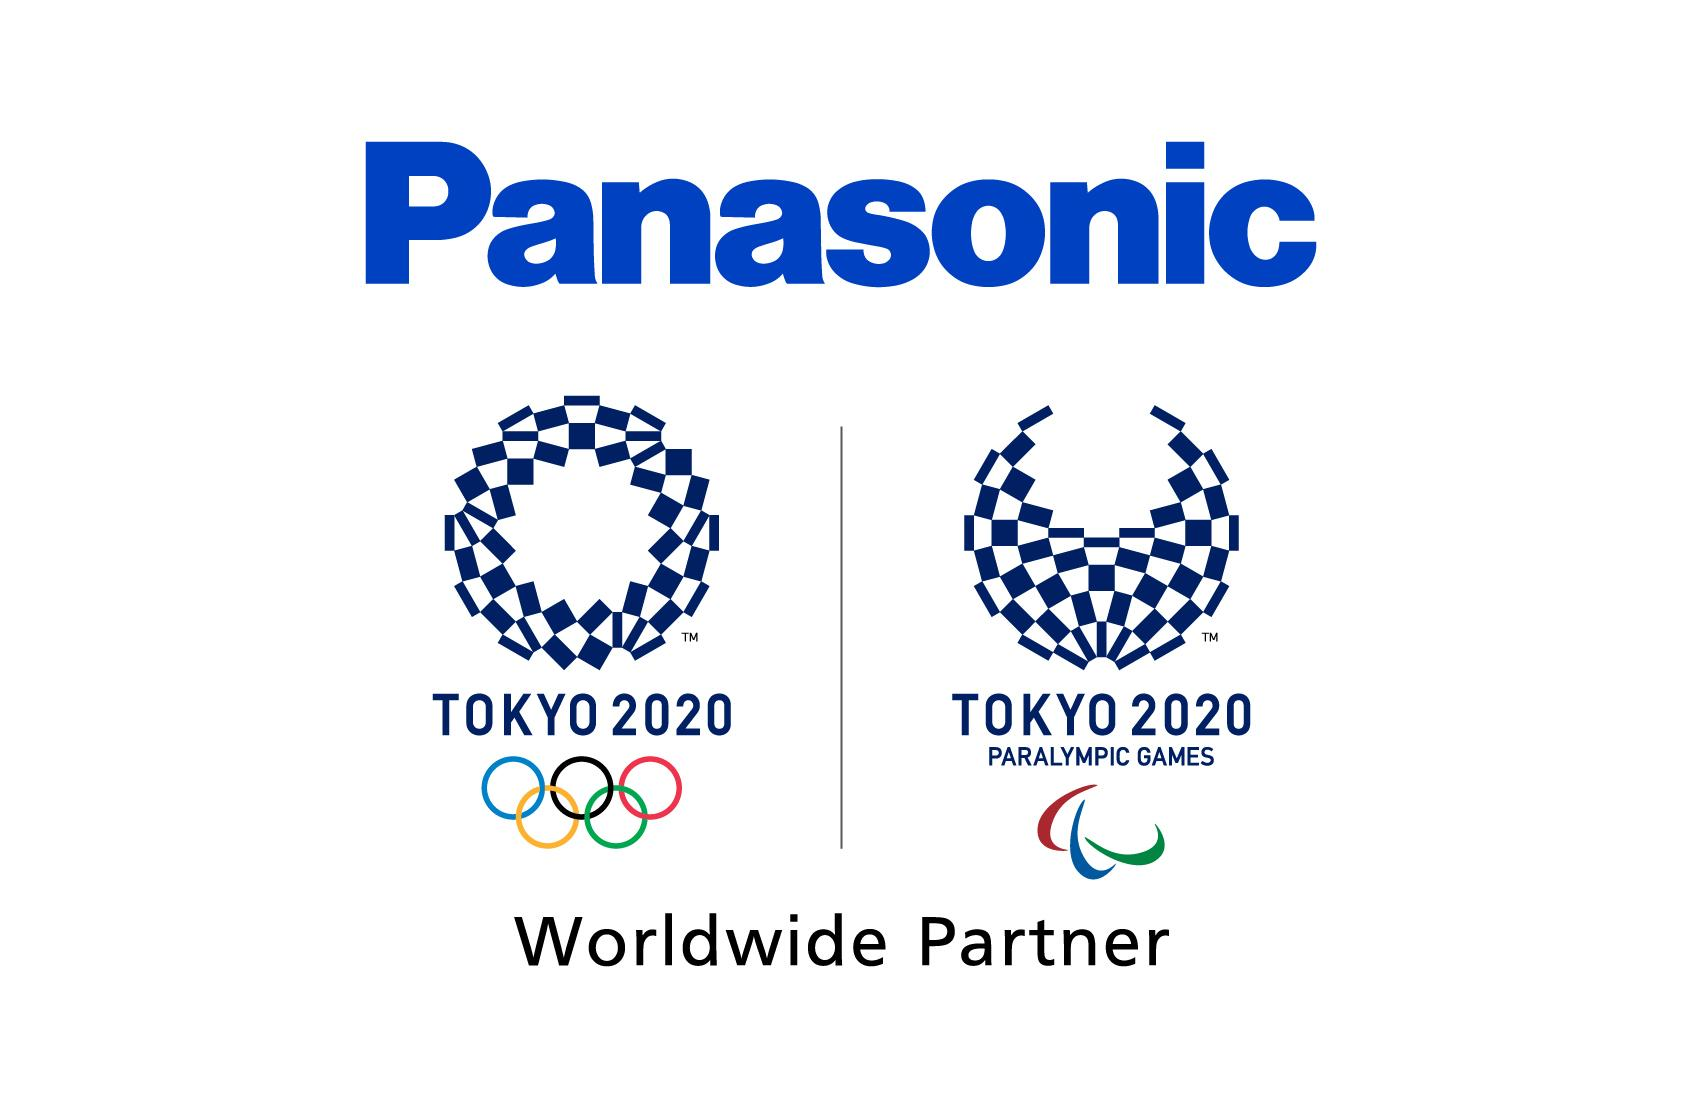 image: Worldwide Olympic Partner and Worldwide Paralympic Partner composite logo